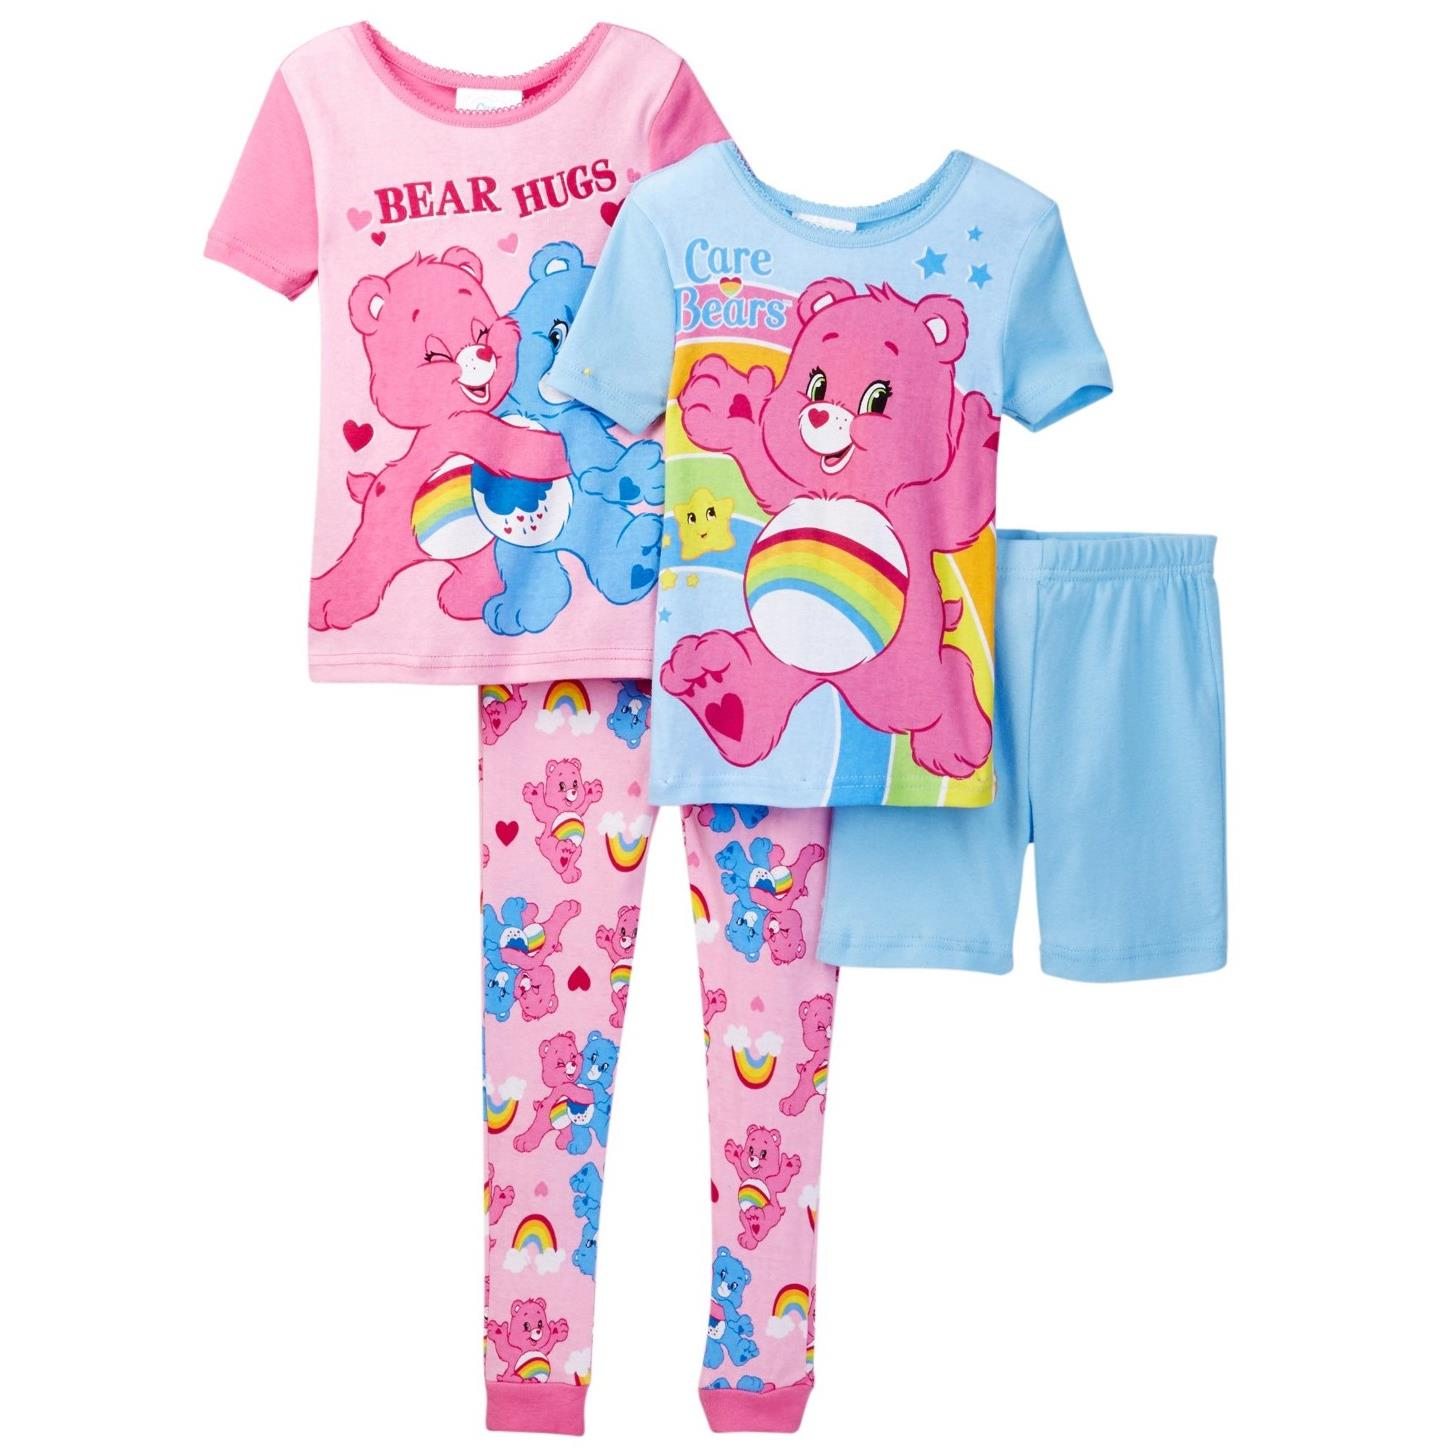 Care Bears Toddler Girls' 4pc Cotton Set